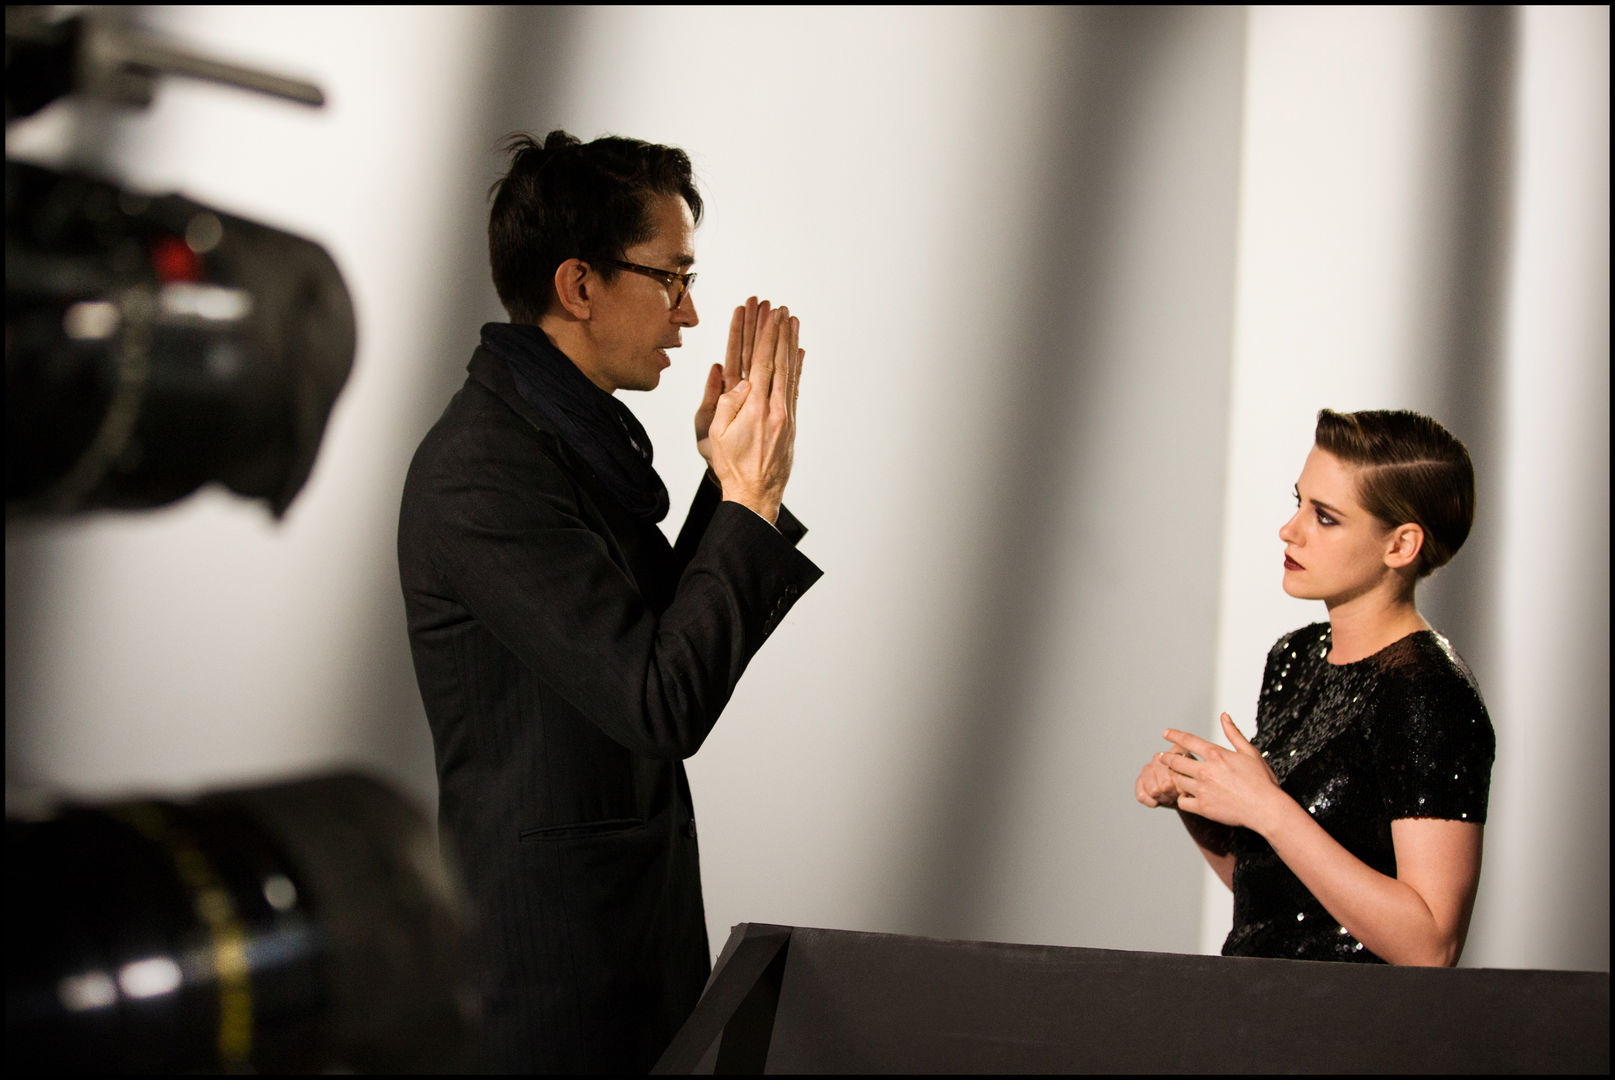 Chanel, Beauty Talk Eyes, Kristen Stewart, Lucia Pica, Patrick Daughters, Andrew Cooper, Photograph by Andrew Cooper